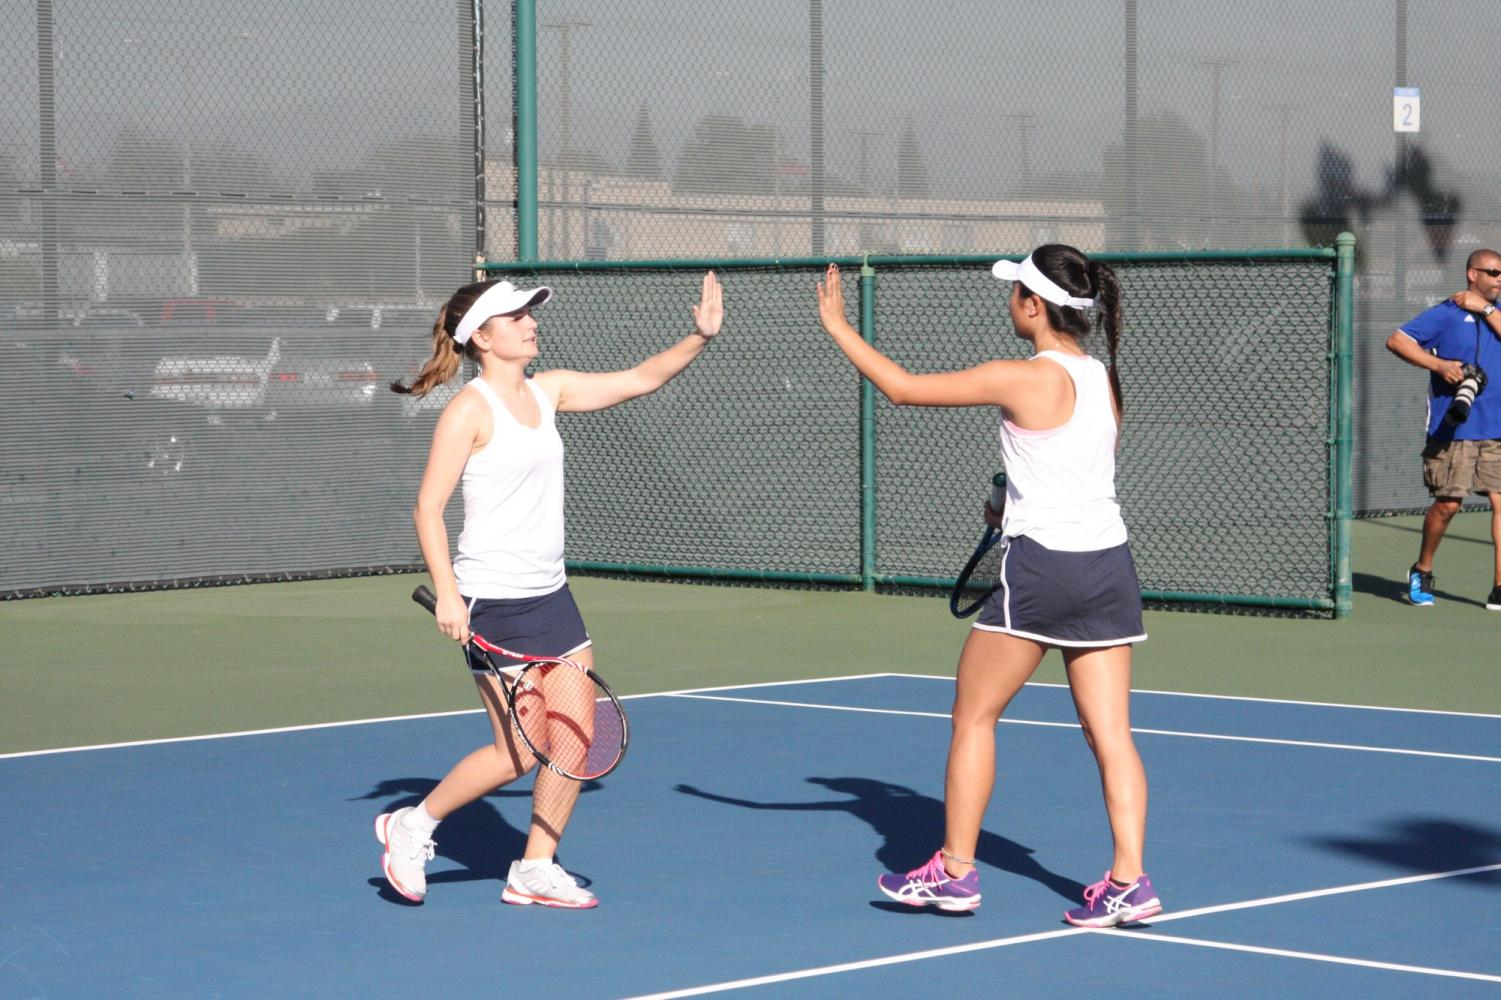 Lisa Suzuki and Petra such celebrate winning the doubles match. Suzuki and Such played against Hope International University's Jessica Cornea and Jovana Milosevic.